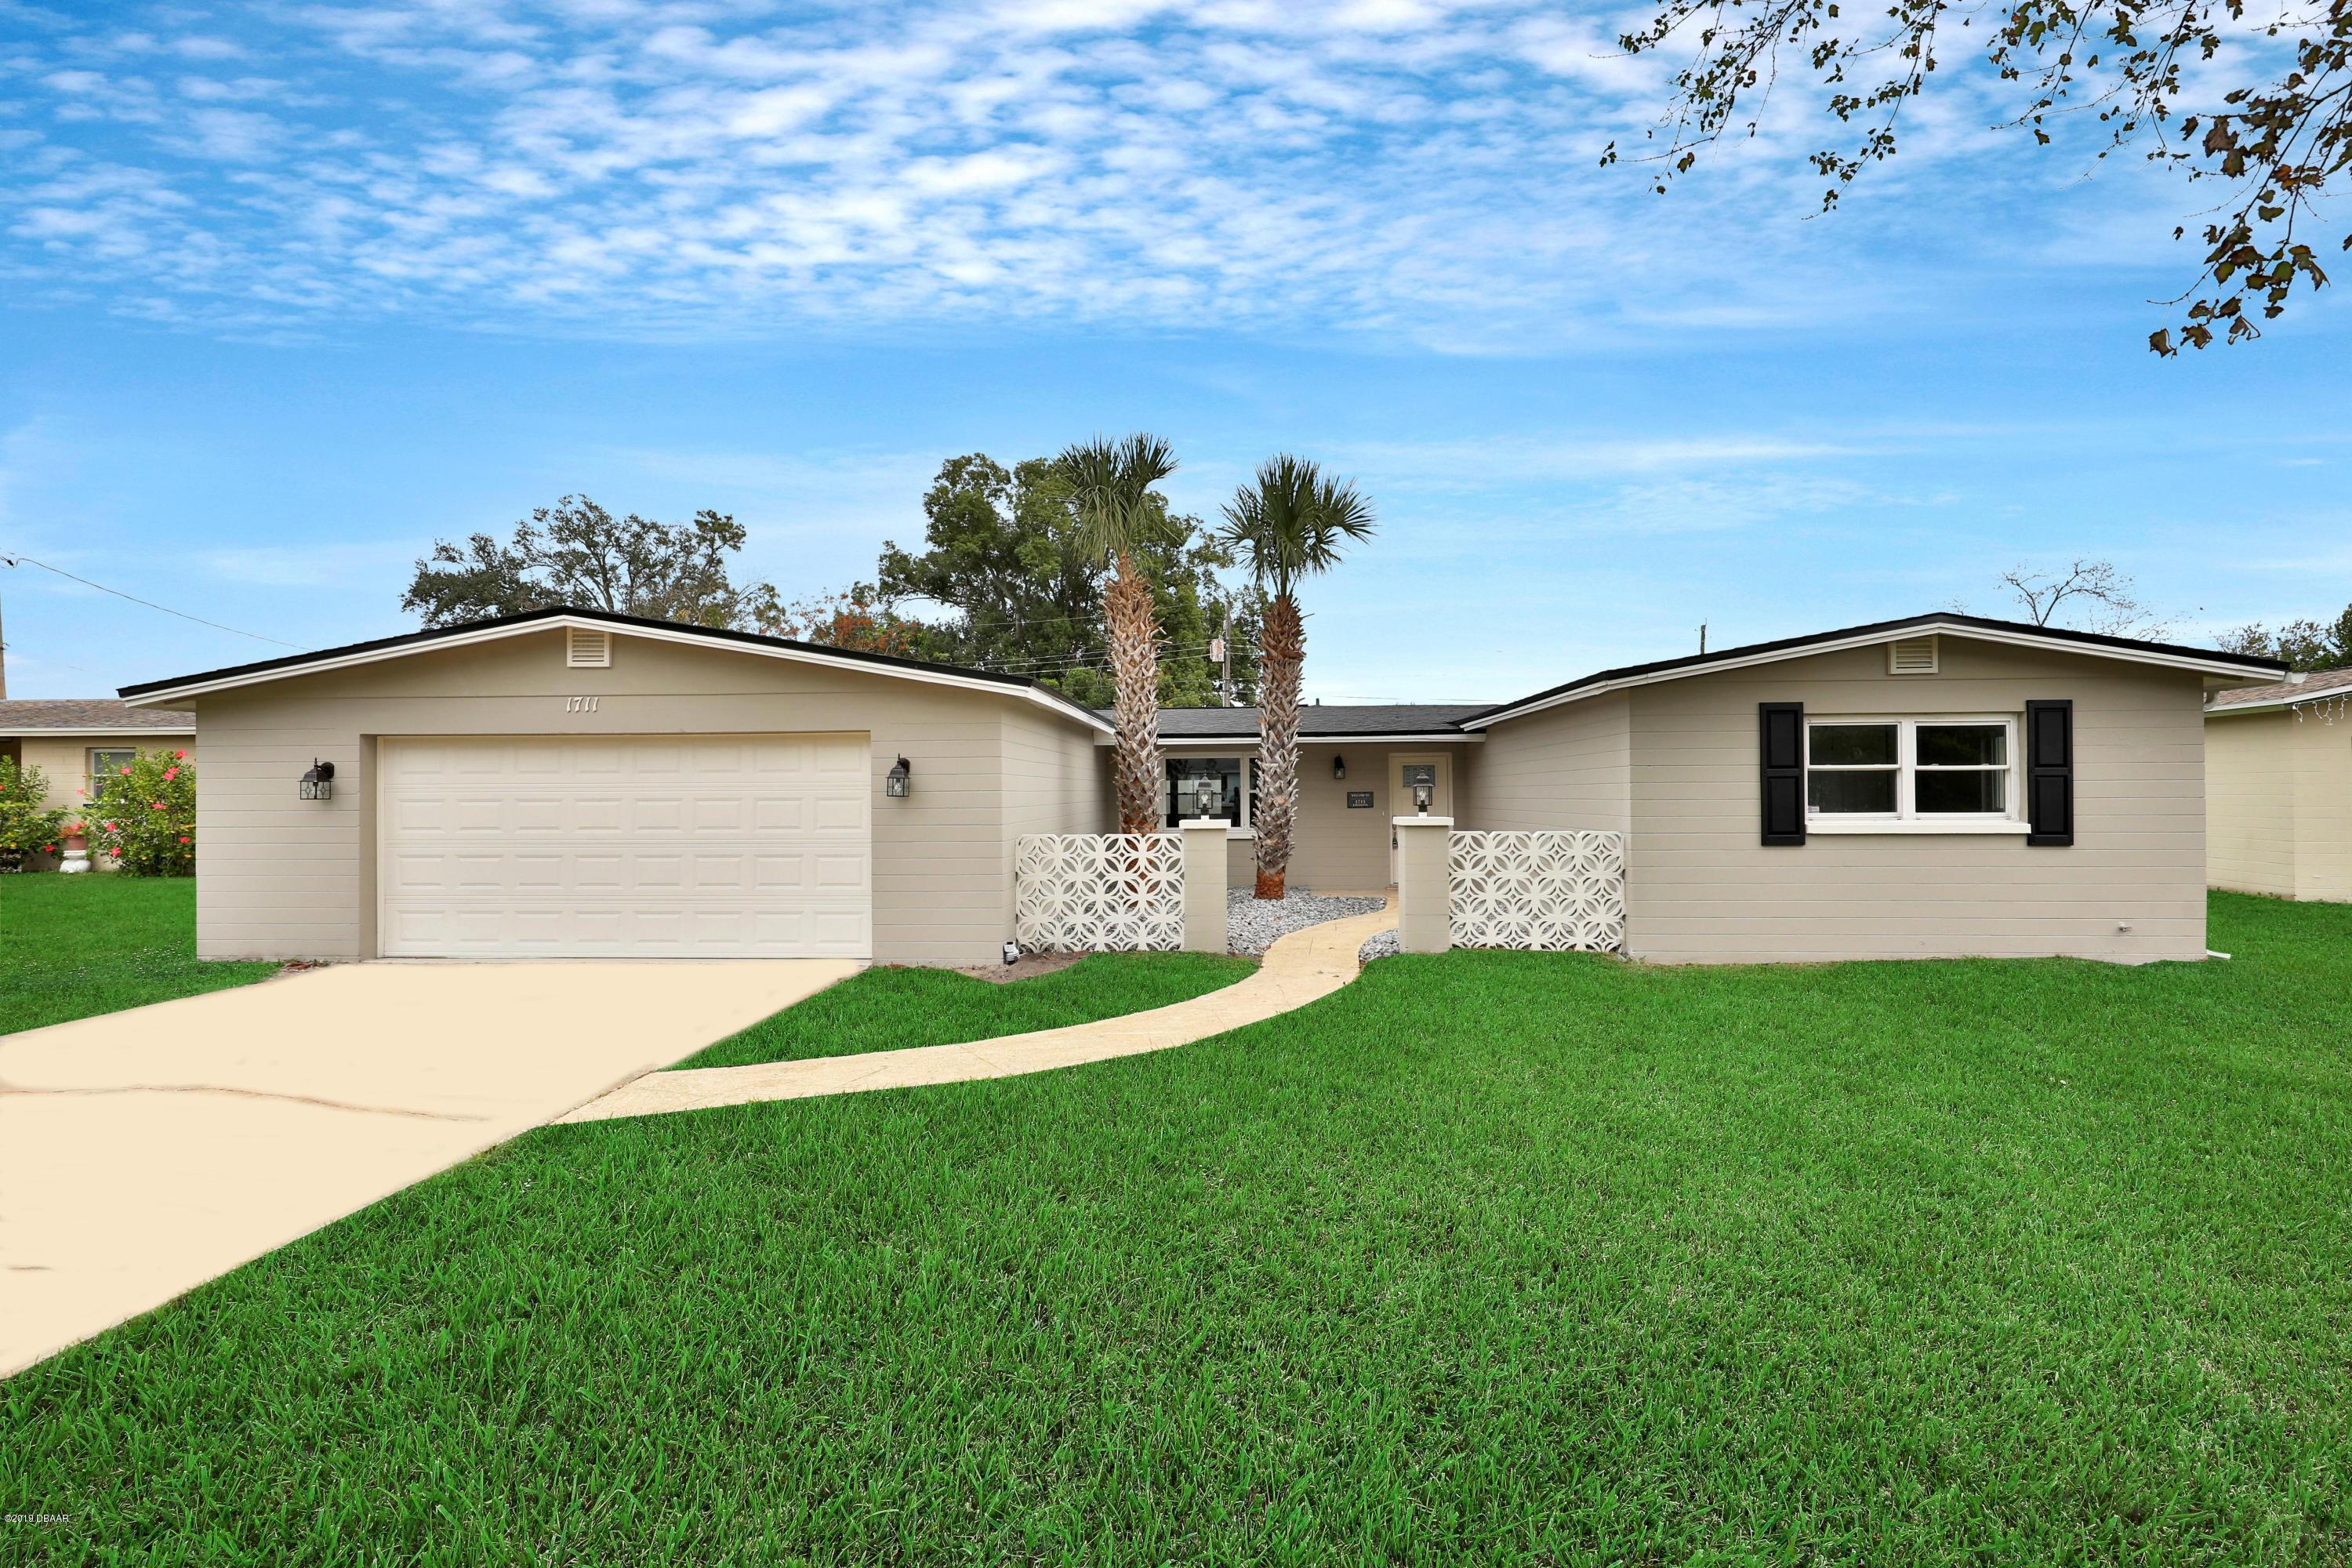 1711 Louisiana Rd, South Daytona, Florida